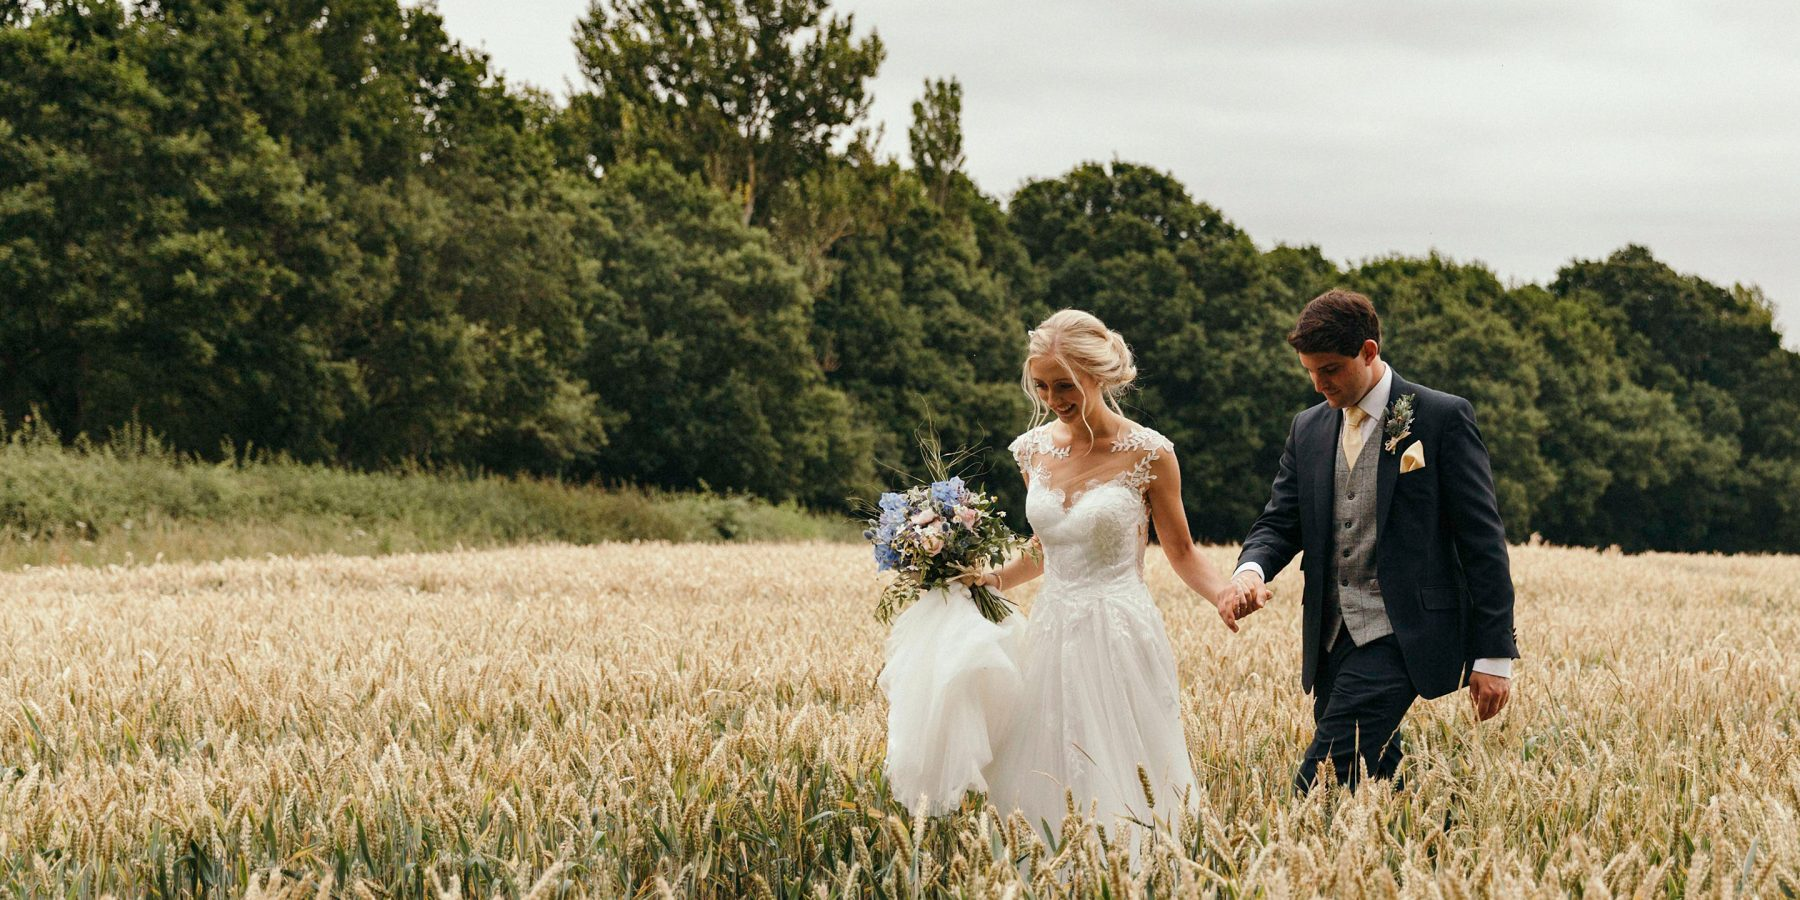 Wedding Photographer Near Me.Suffolk Essex Wedding Photographer Chris Bradshaw Photography